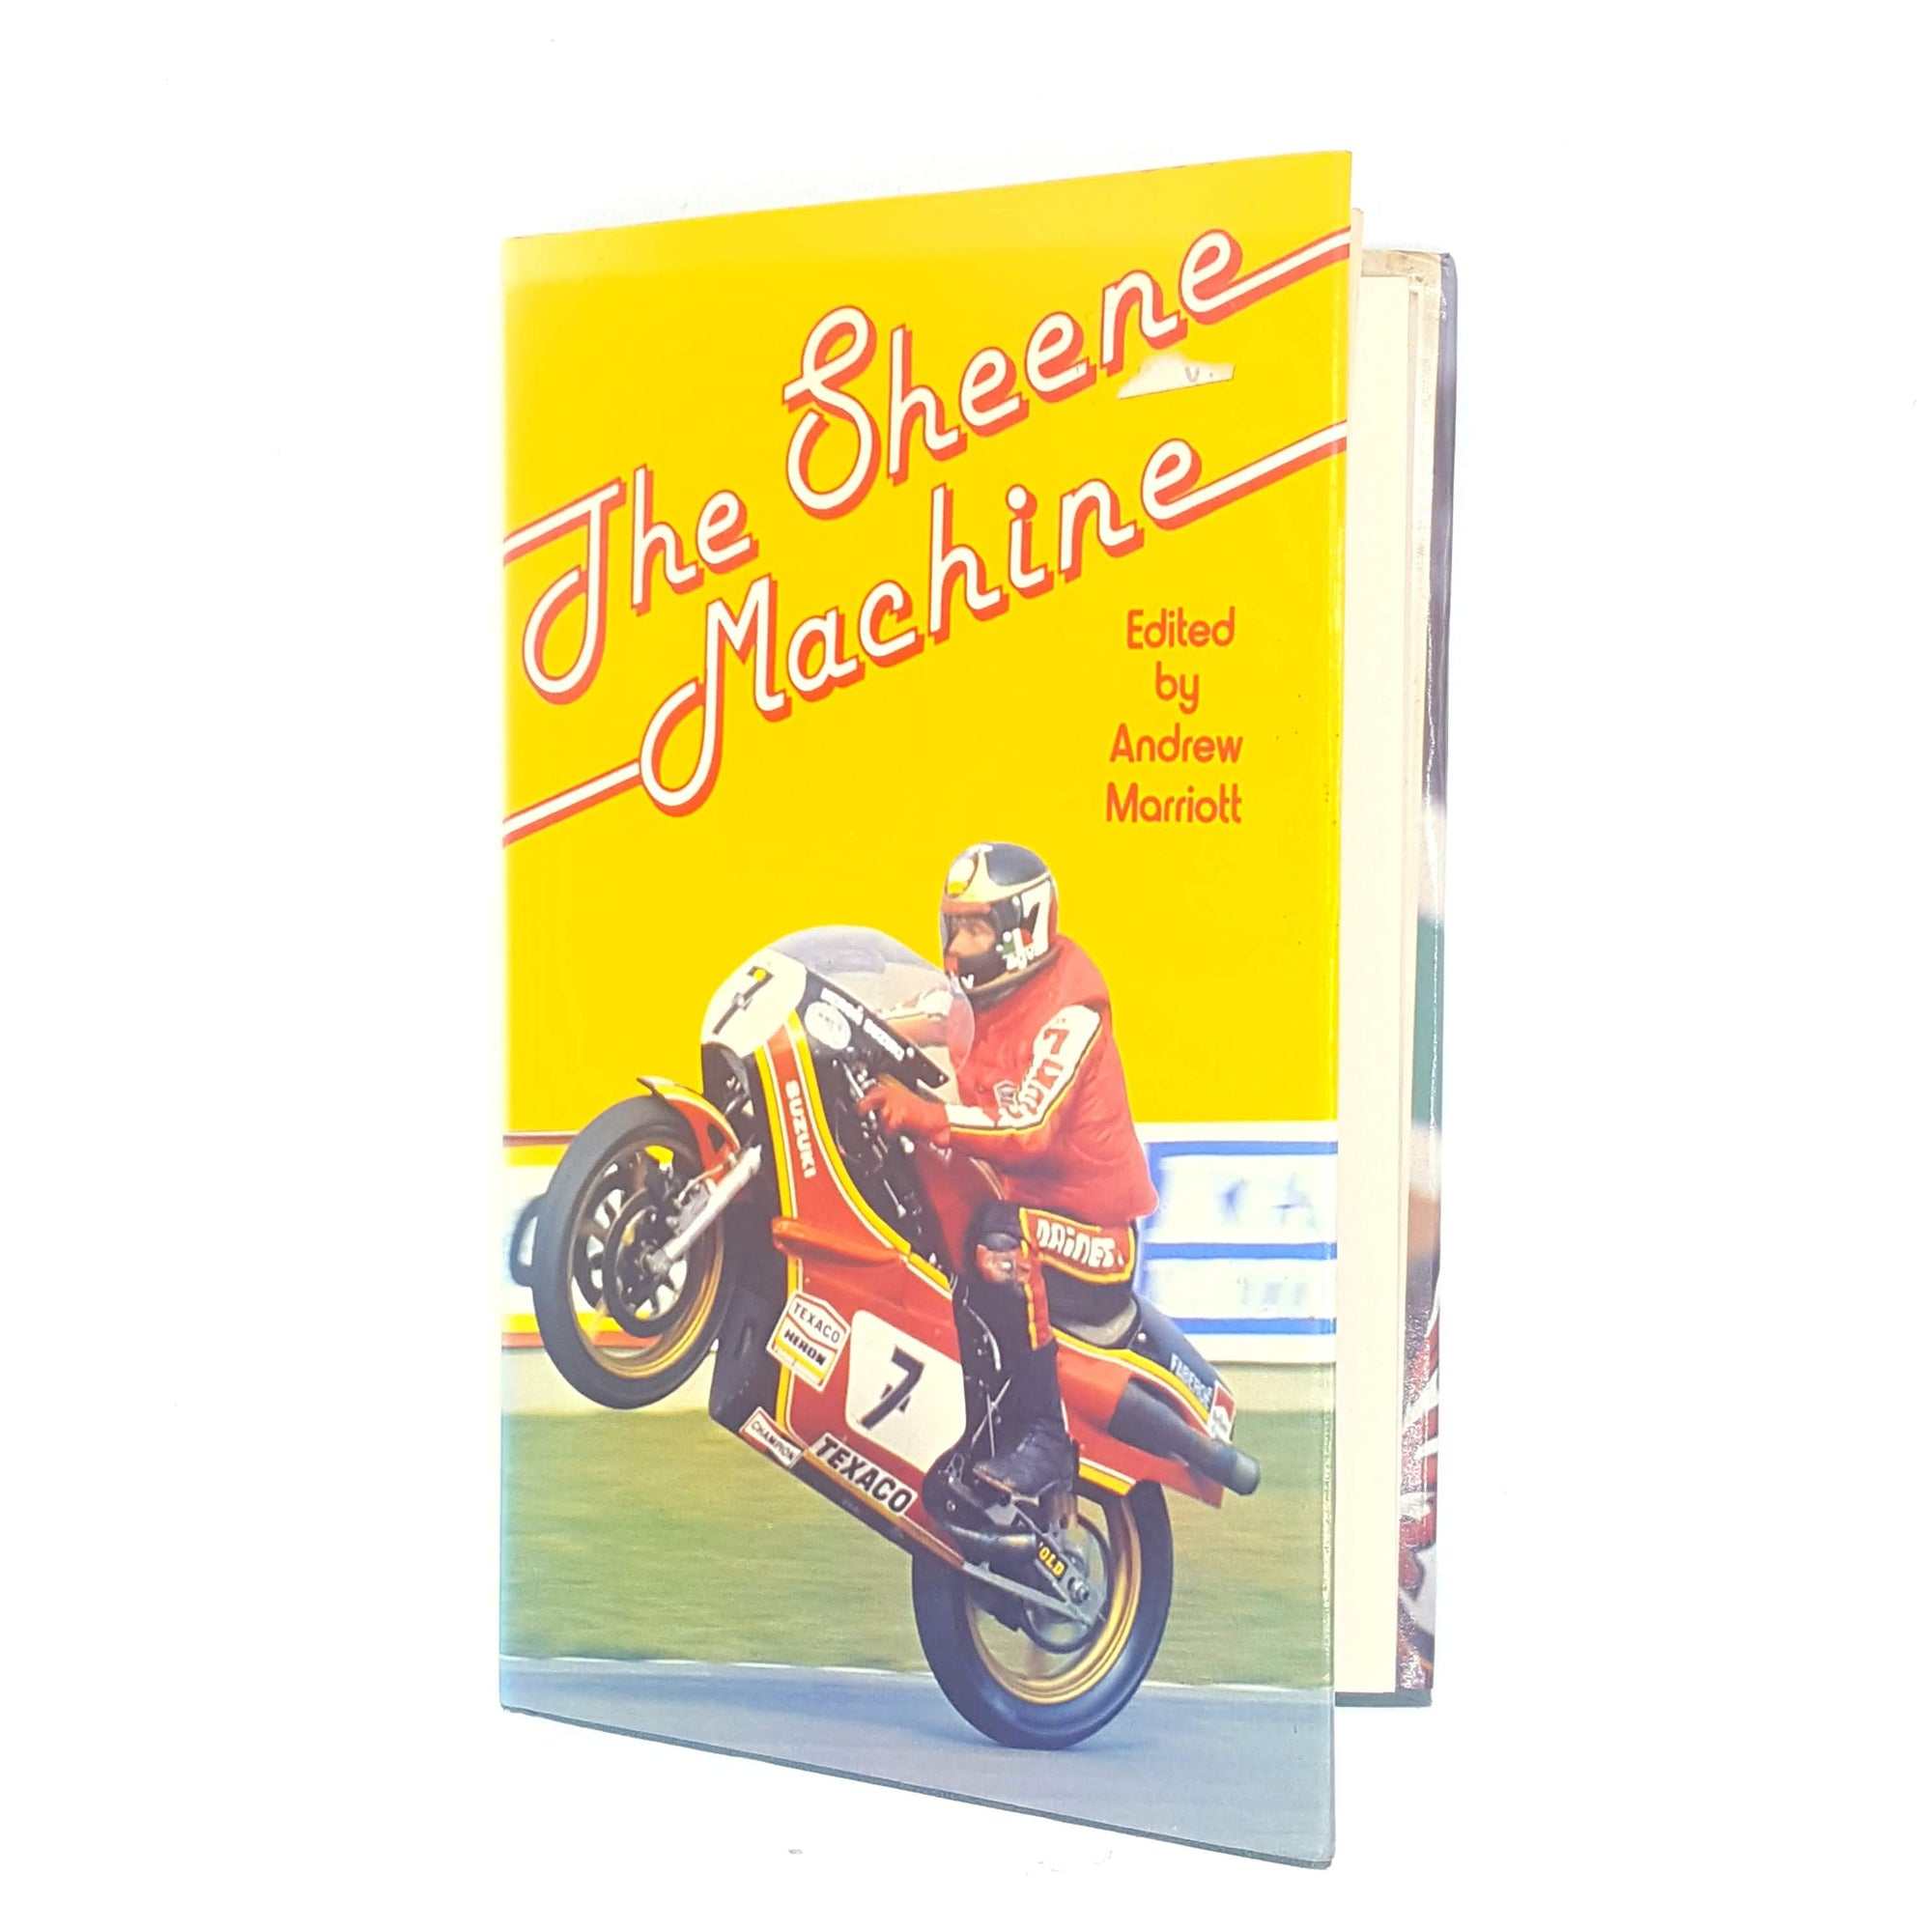 old-vintage-1964-books-racing-sport-patterned-barry-sheene-antique-decorative-sheene-machine-motorcycle-thrift-country-house-library-